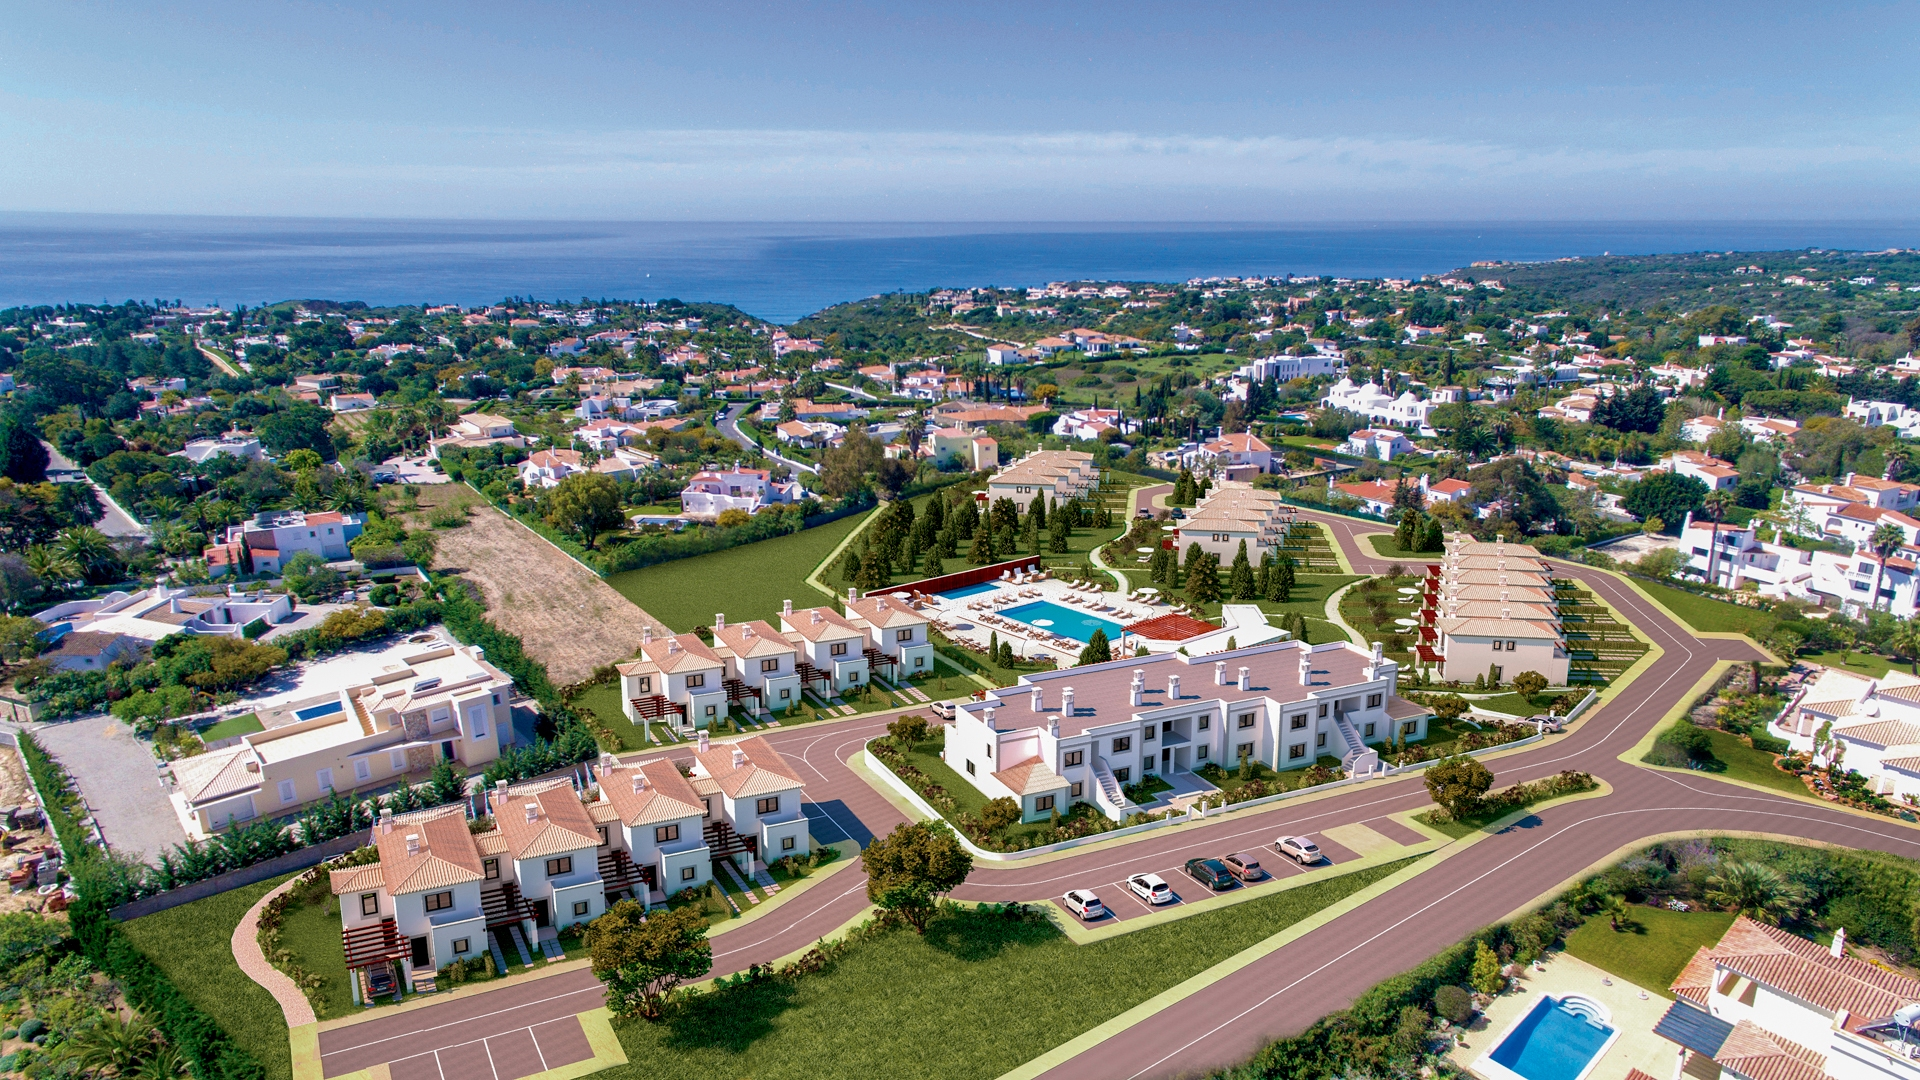 2 Bedroom Townhouses with Sea Views in a Resort, Carvoeiro | PCC1384 The Resort is surrounded by private villas which means the it is not exposed to traffic and therefore very quiet.